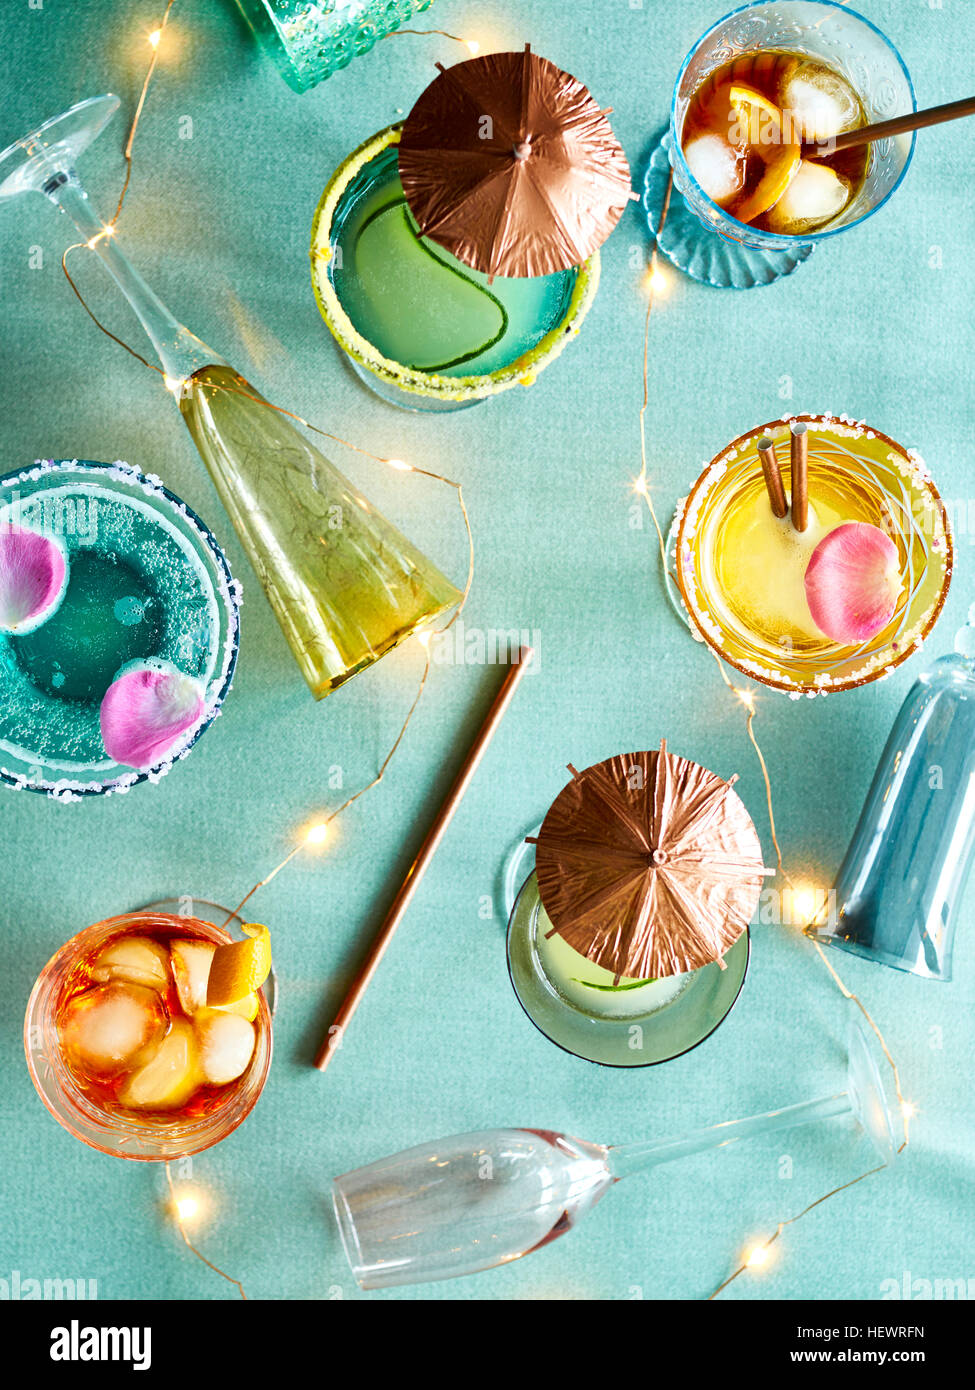 Decorative lights and party cocktails - Stock Image